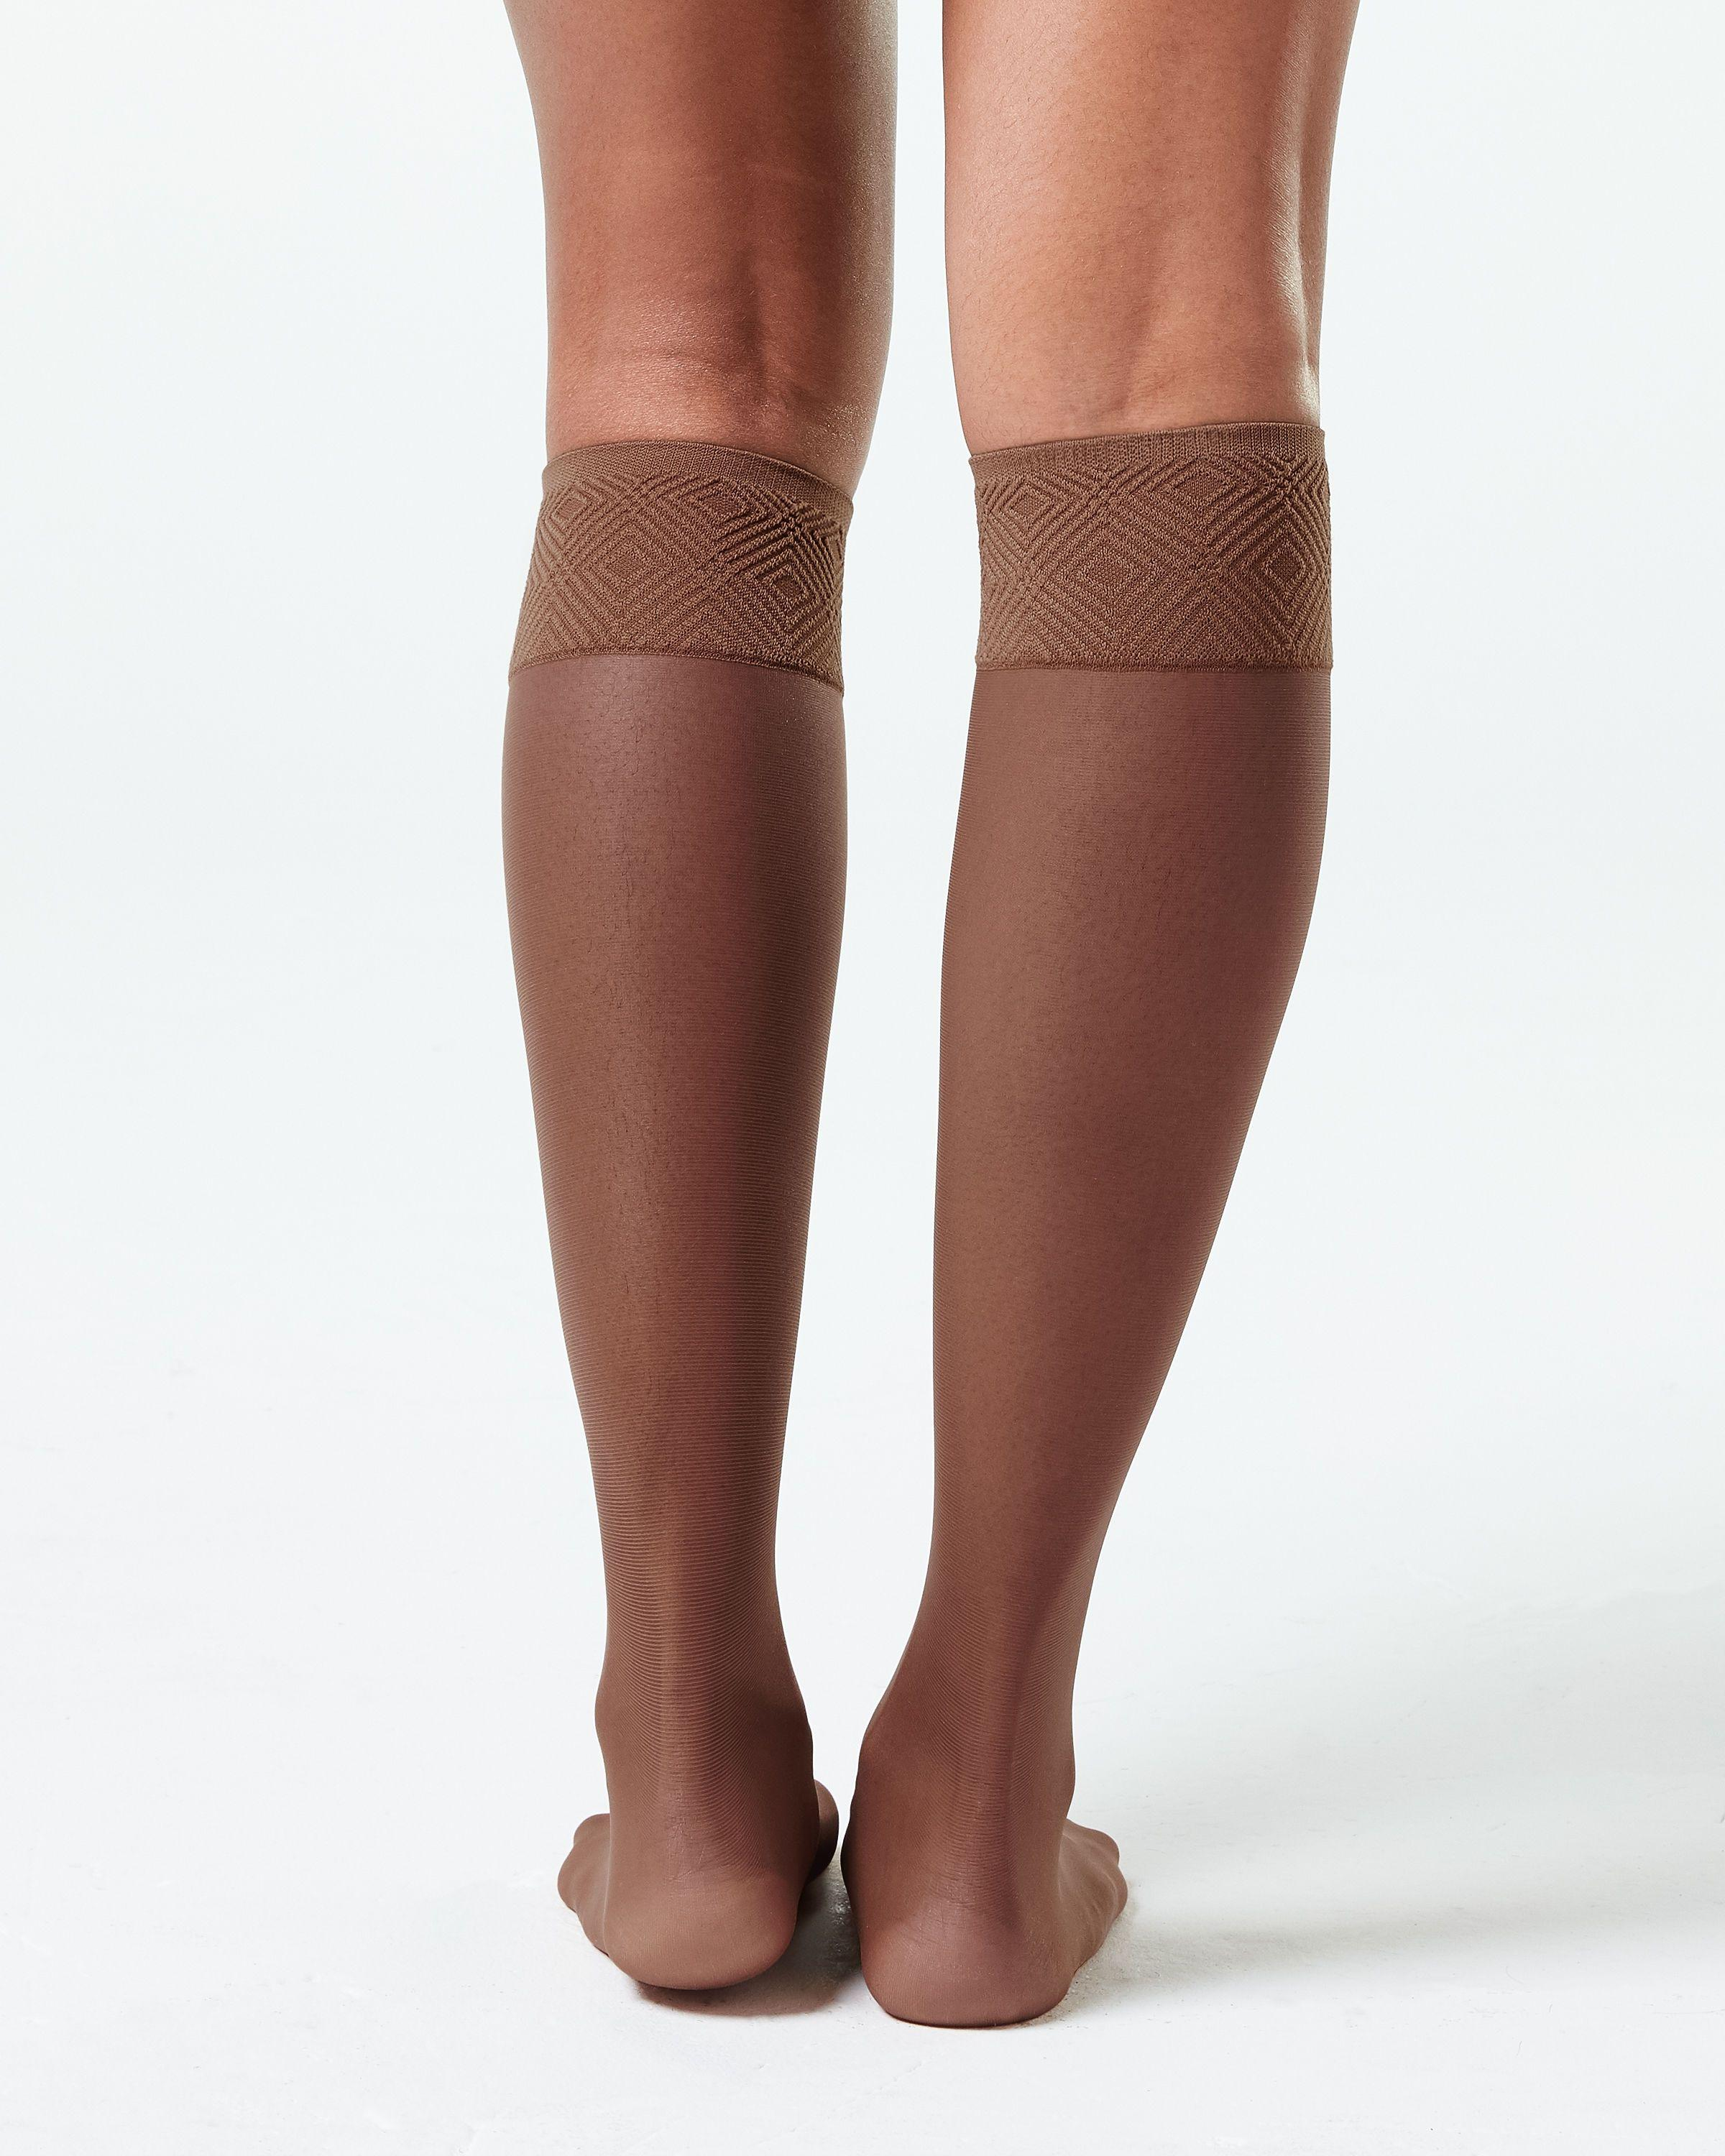 45d1a73e121 Lyst - Spanx Sheer Hi-knee Socks - Two Pack! in Brown